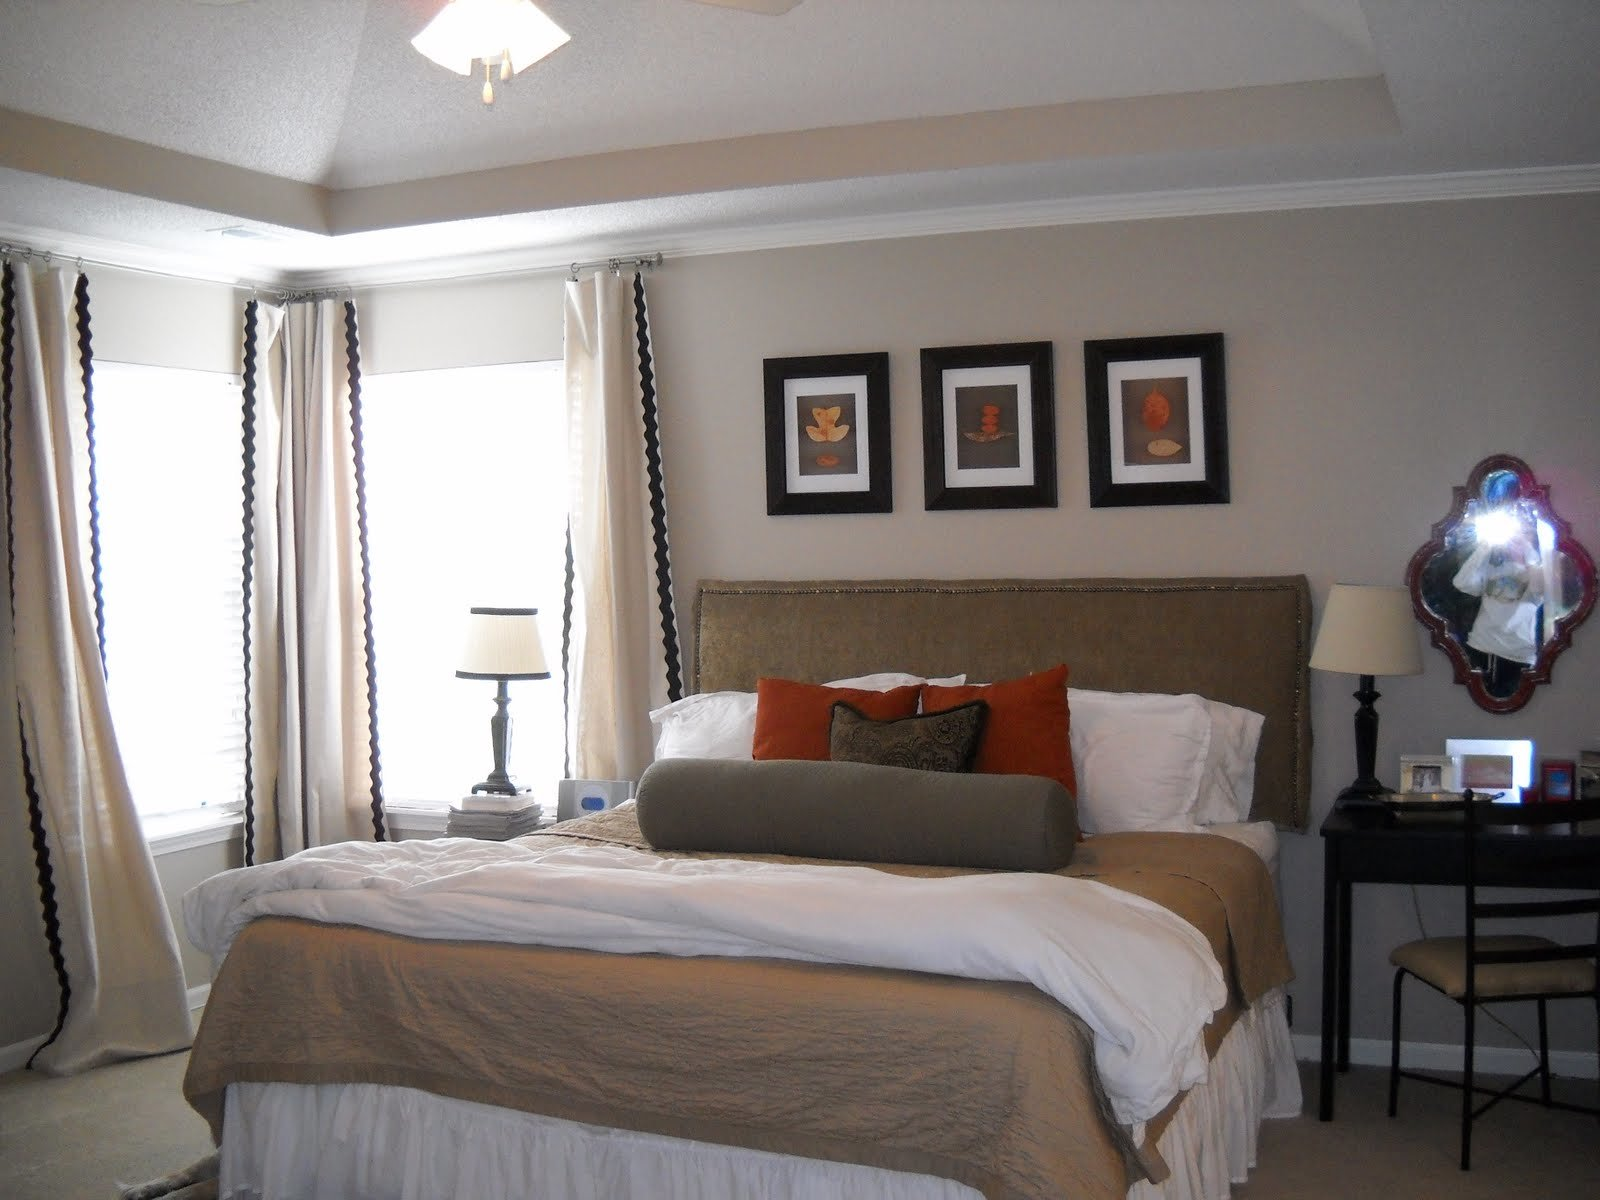 Best Master Bedroom Makeover Suburban Sp*Nk Diy Show Off ™ Diy Decorating And Home Improvement With Pictures